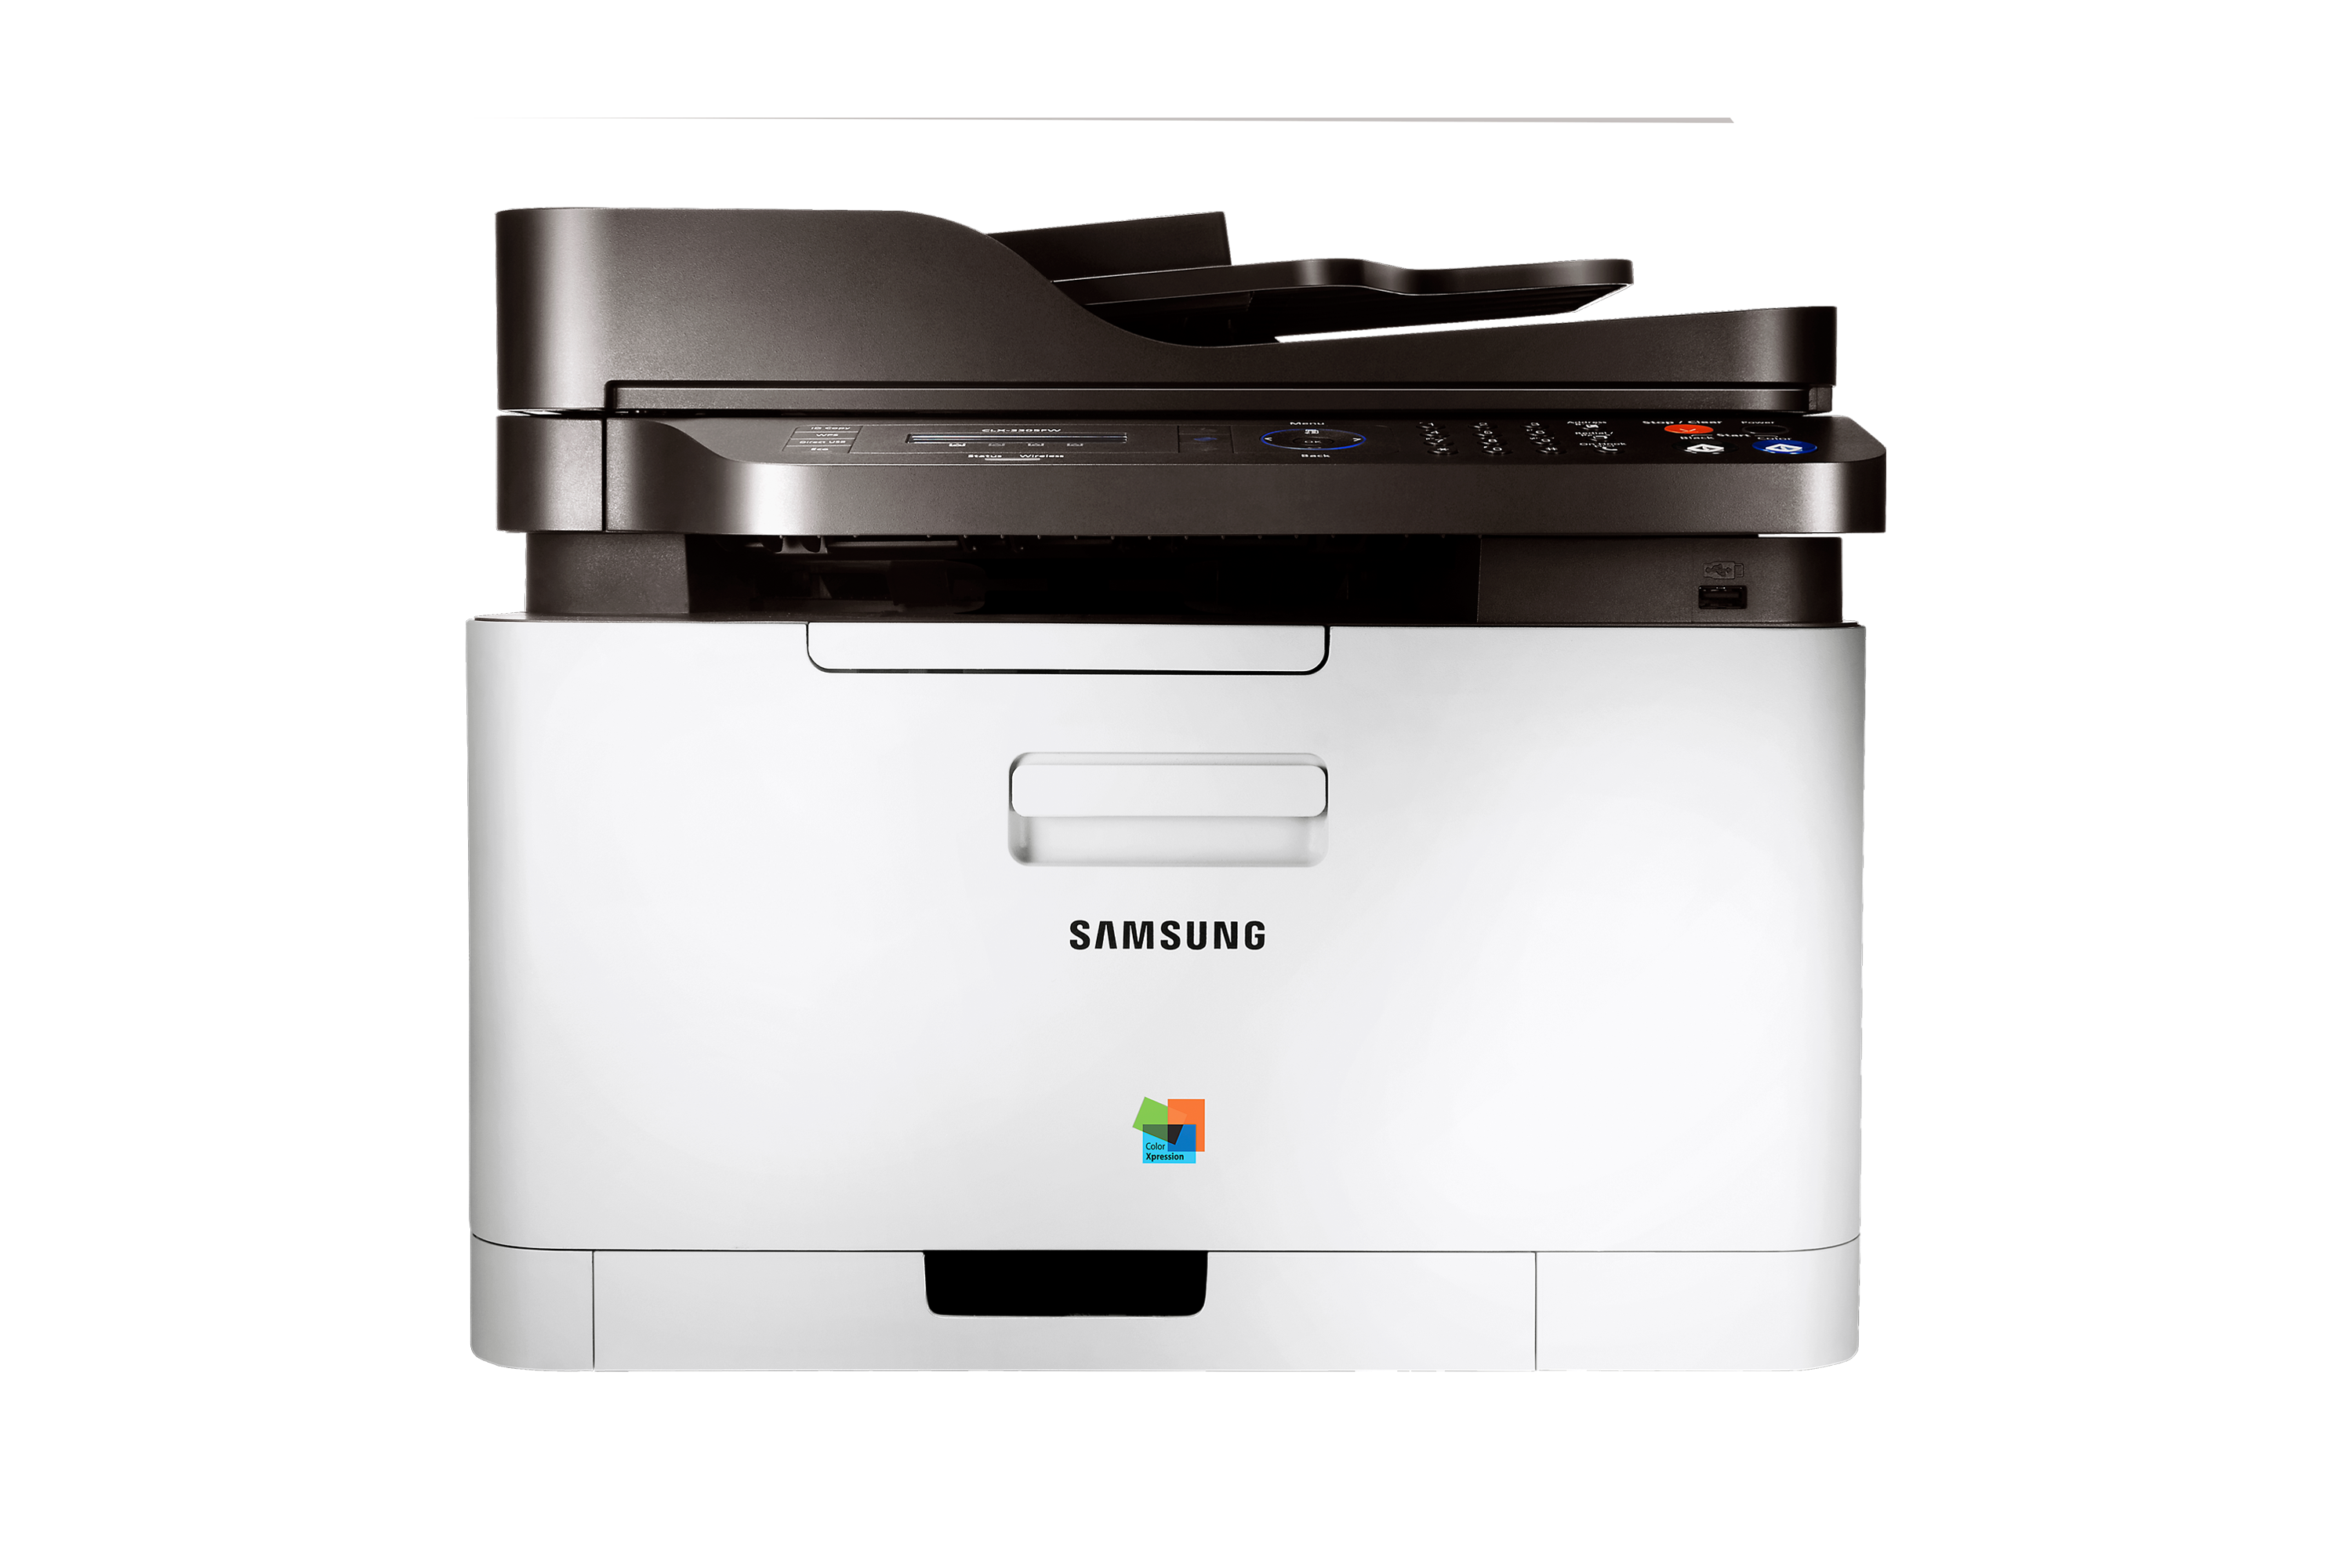 CLX-3305FW Wireless 4 in 1 Colour Multifunction Printer